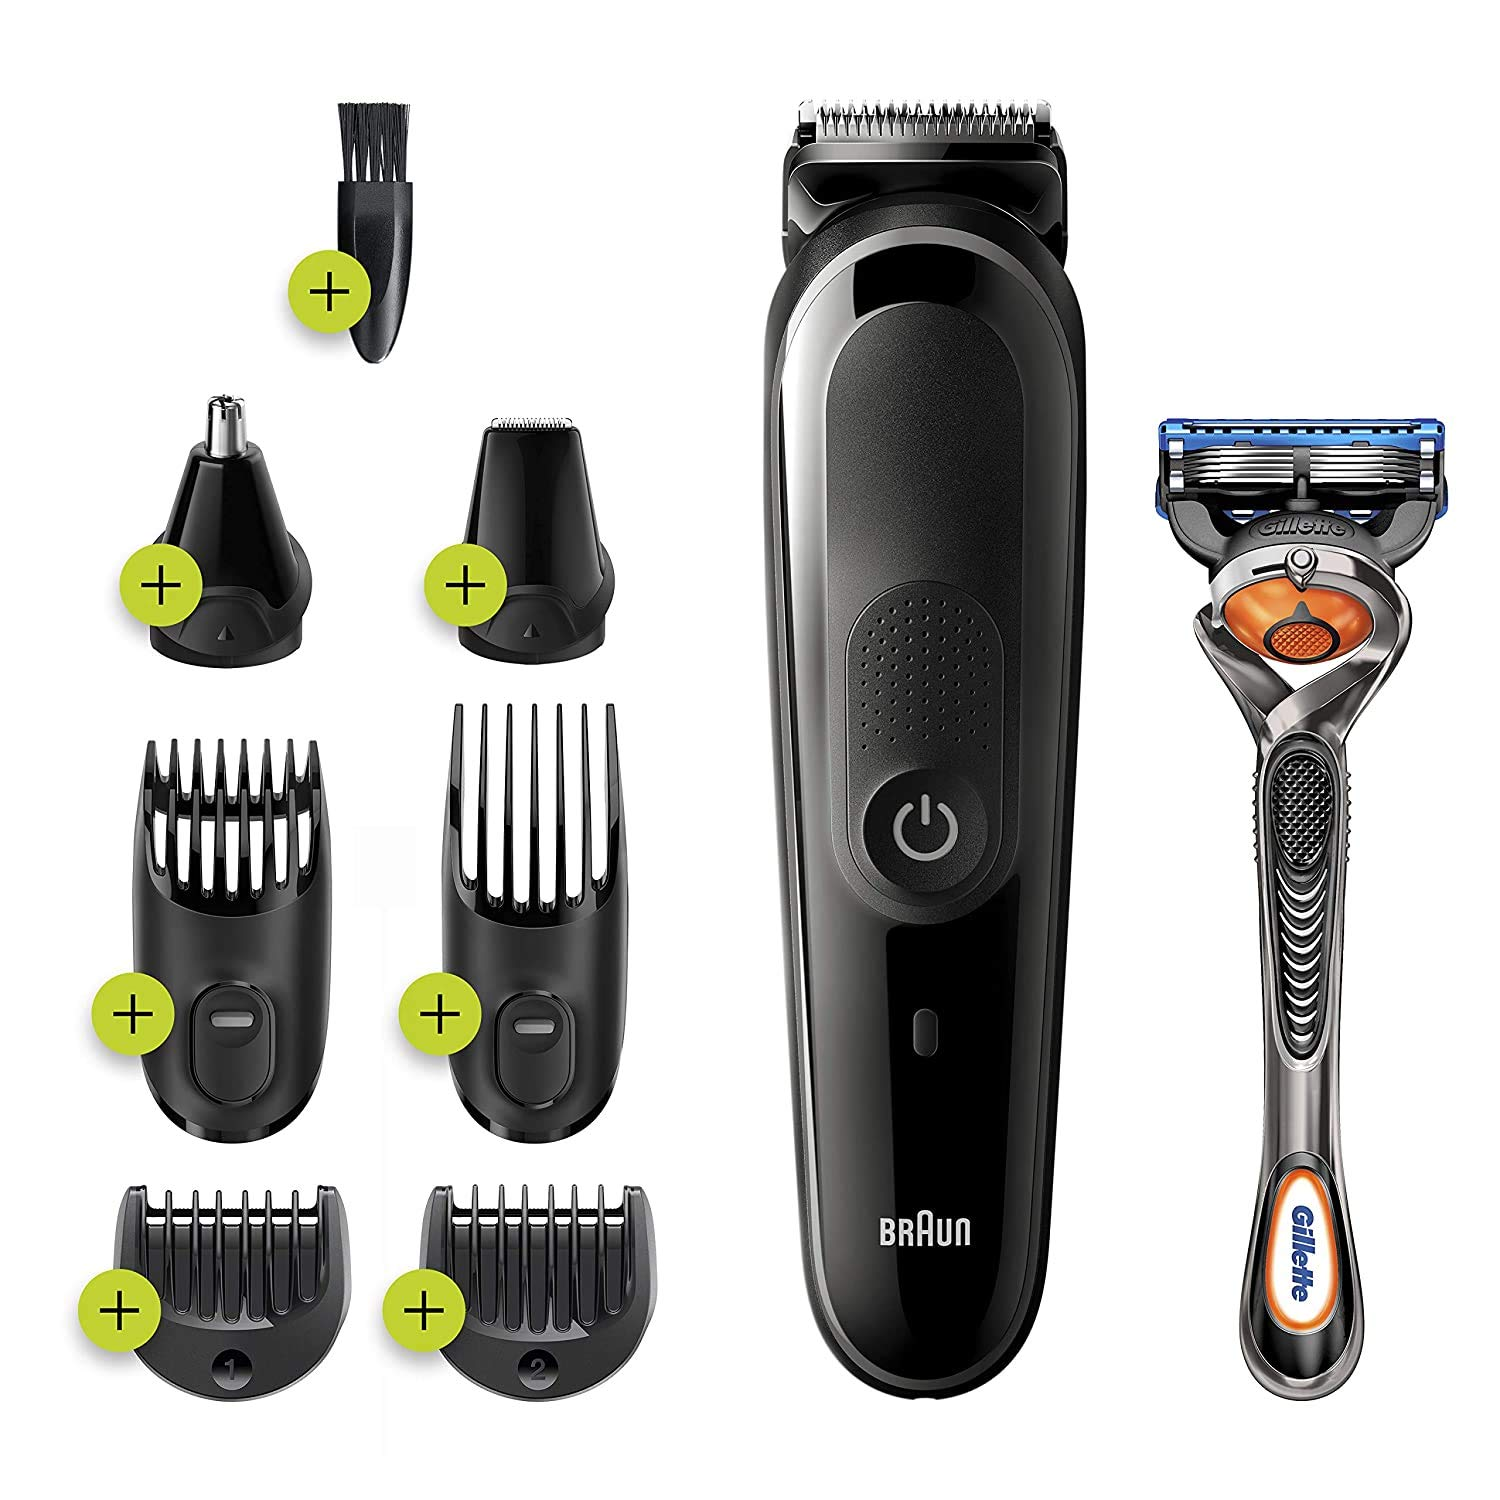 Braun Hair Clippers for Men MGK3260, 7-in-1 Beard Trimmer, Ear and Nose Hair Trimmer, Detail Trimmer, Cordless & Rechargeable, with Gillette ProGlide Razor